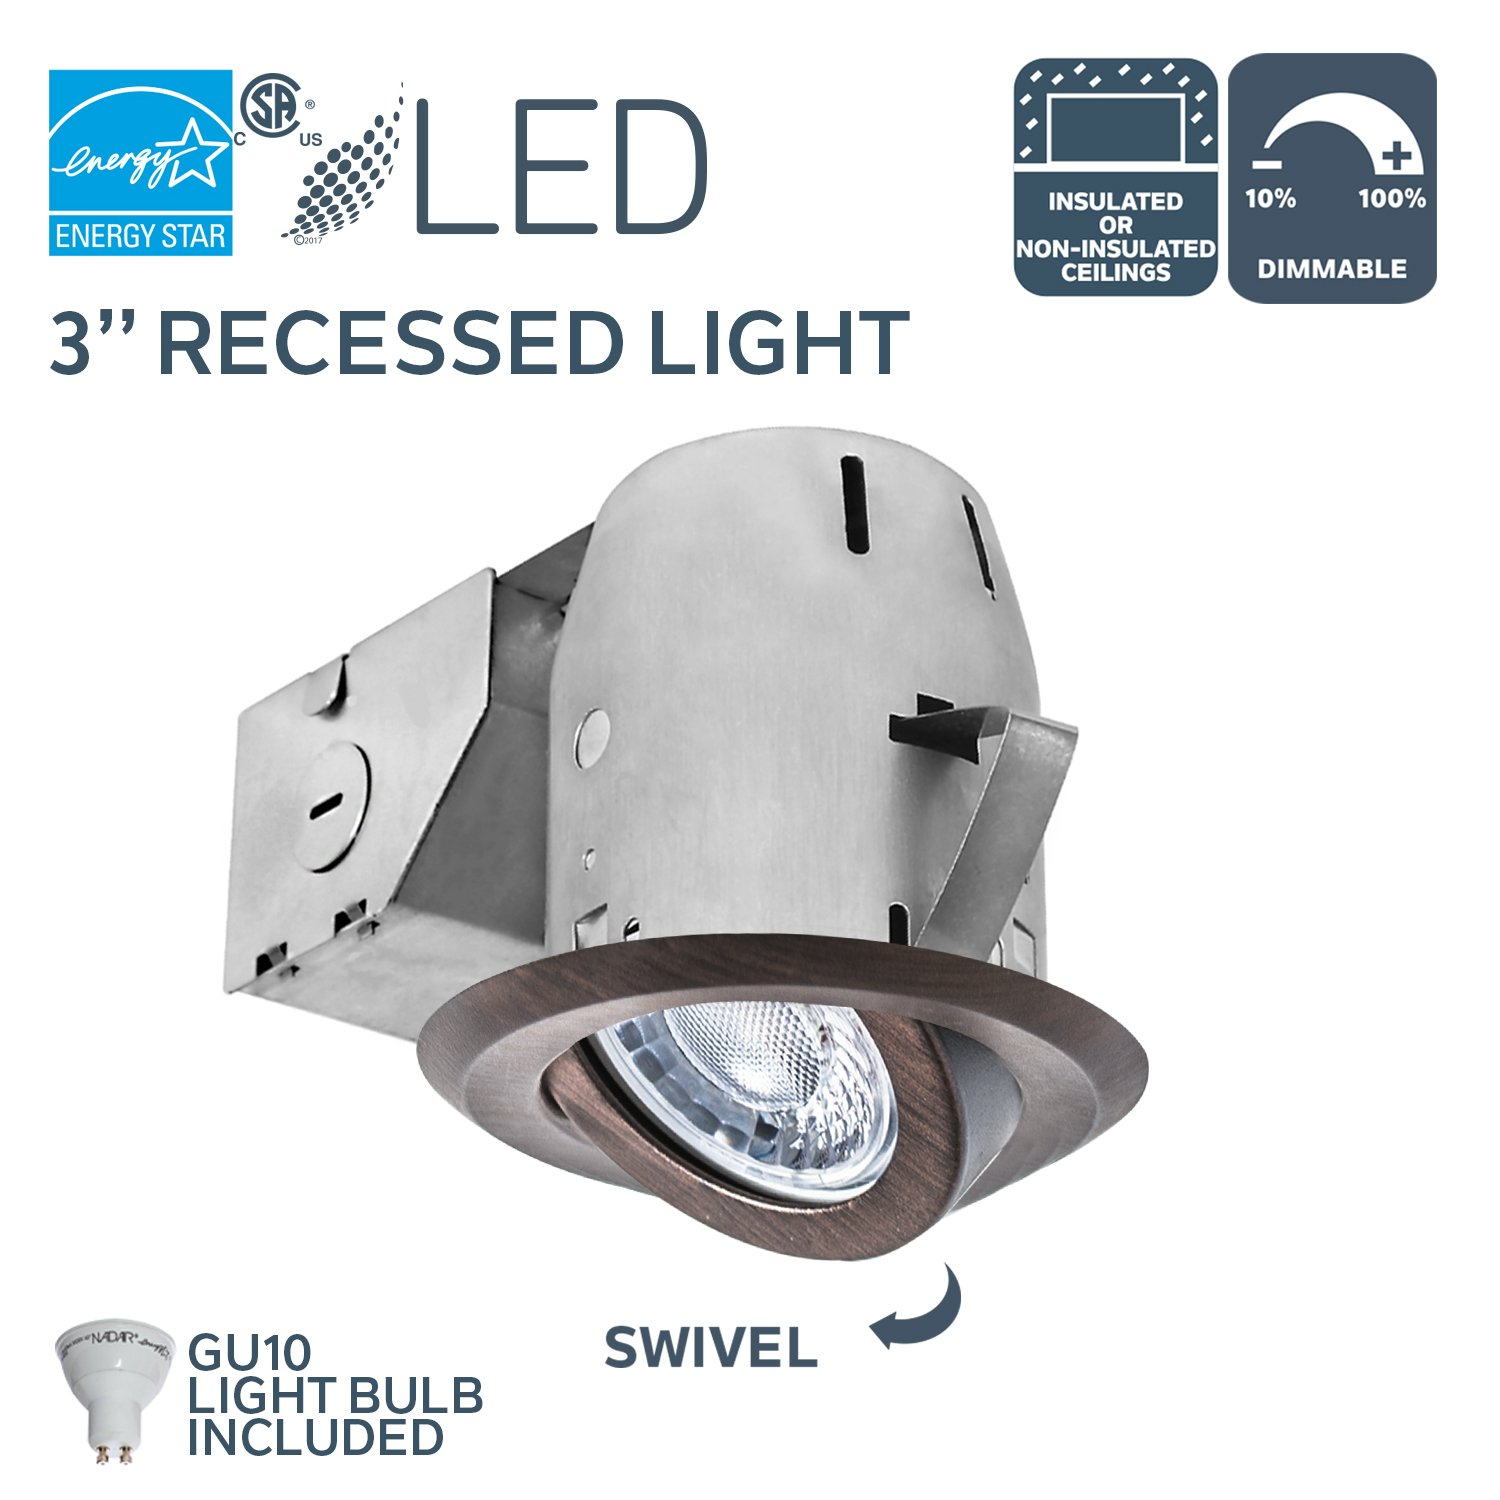 Nadair GU300L-SWORB 3in LED Recessed Lighting Swivel Spotlight Dimmable Downlight - IC Rated - 3000K Warm White GU10 550 Lumens Bulb (50 Watts Equivalent) Included, Bronze Color